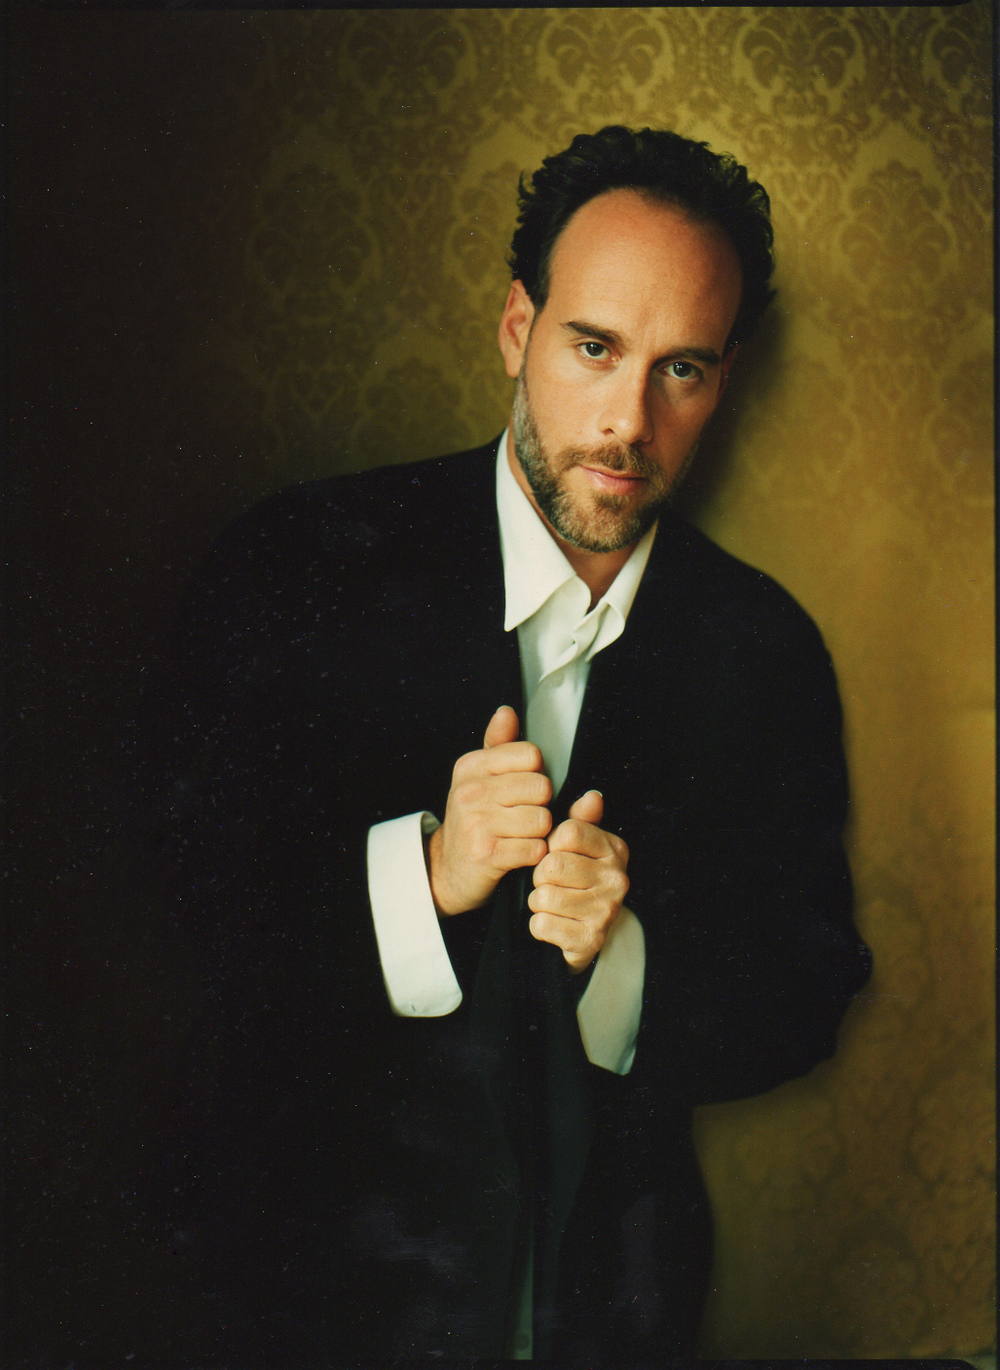 Marc Cohn Atlantic Records Photo, Frank Ockenfels